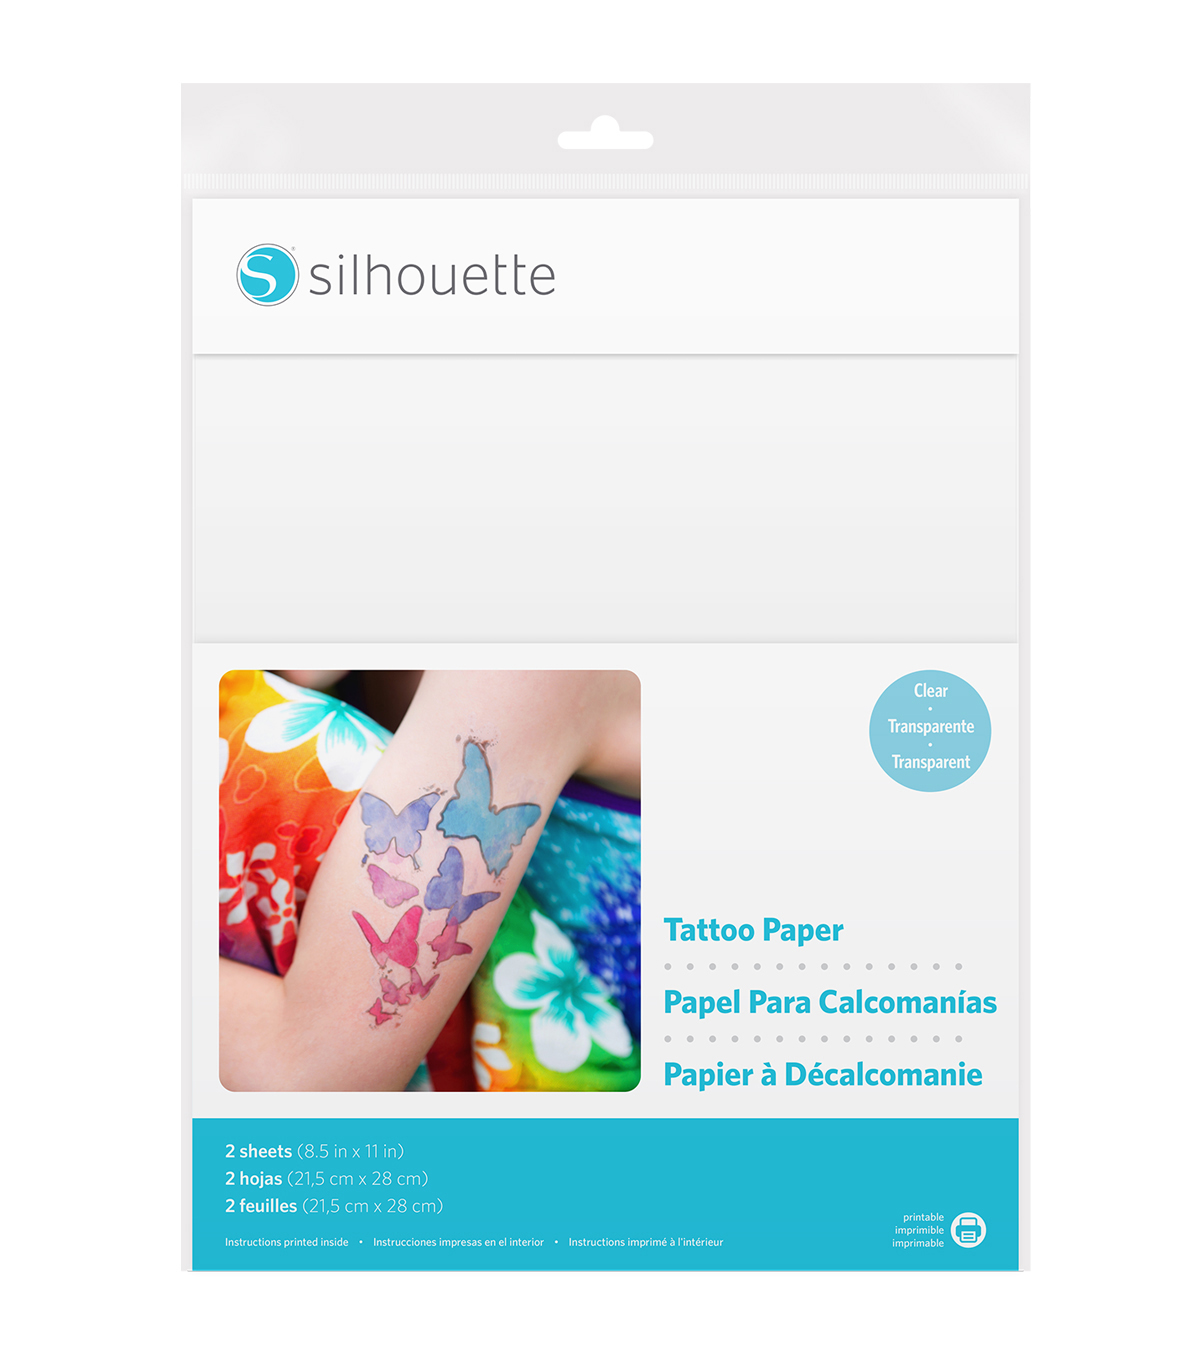 2 sheets Silhouette Inkjet Printable Temporary Tattoo Paper